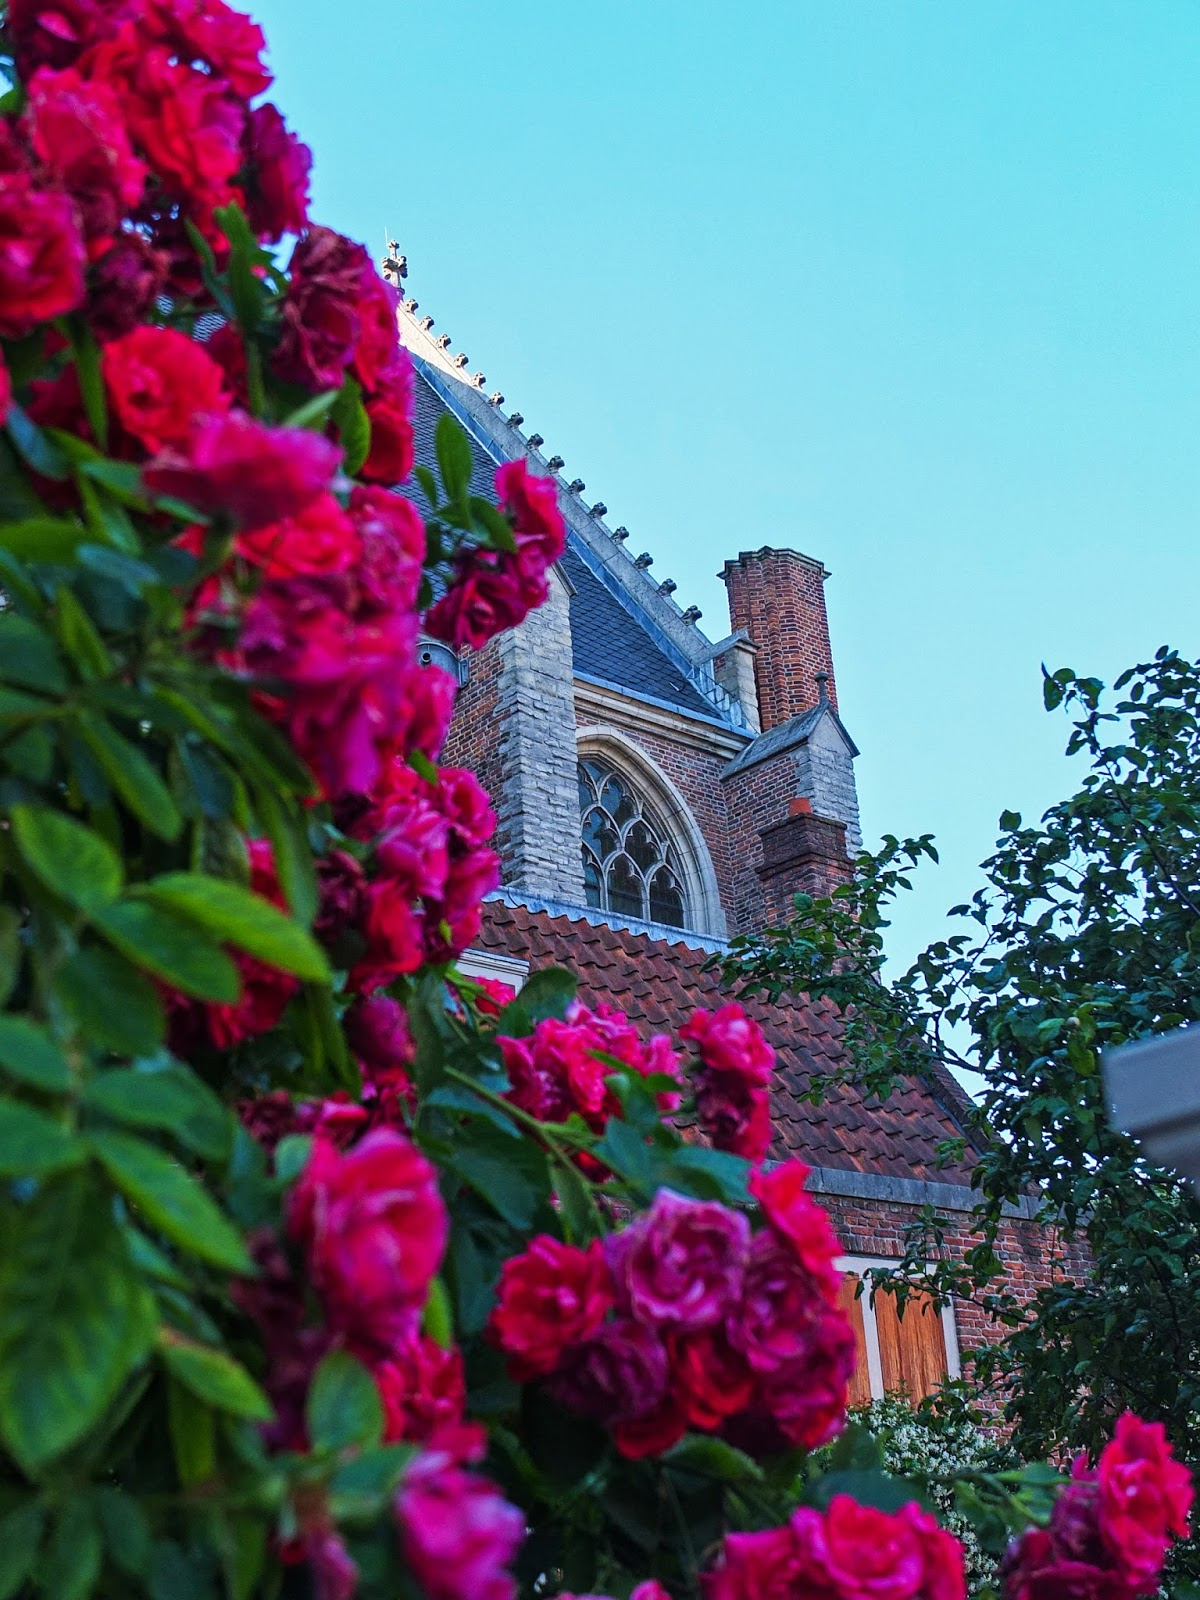 Section of the Oude Kerk Church with pink flowers in the foreground.